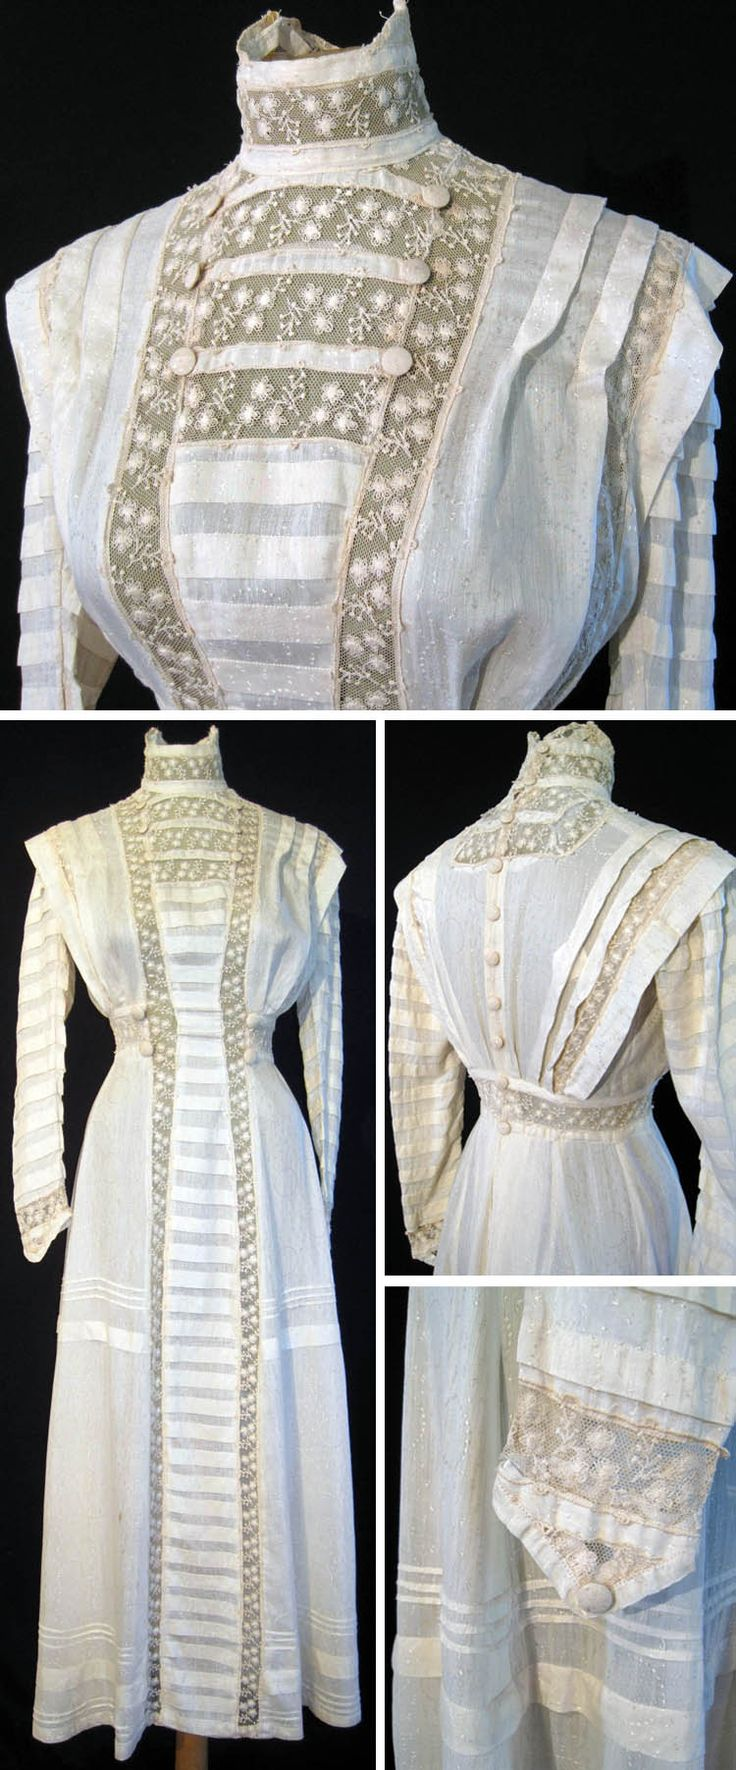 dress early 1900s silk with satin thread embroidered in circles dots front has full length. Black Bedroom Furniture Sets. Home Design Ideas